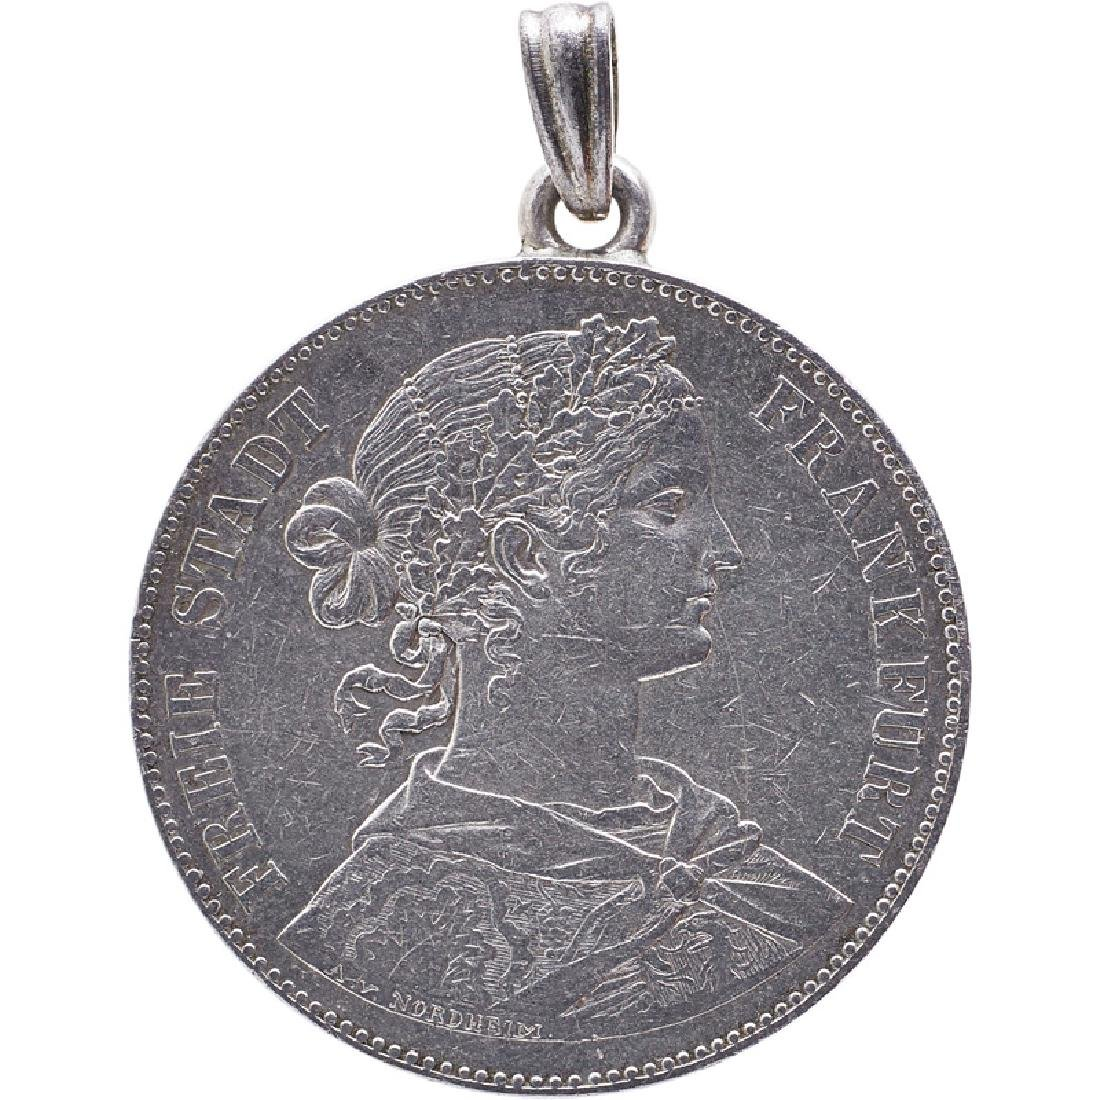 FOREIGN COINS AND MEDALS